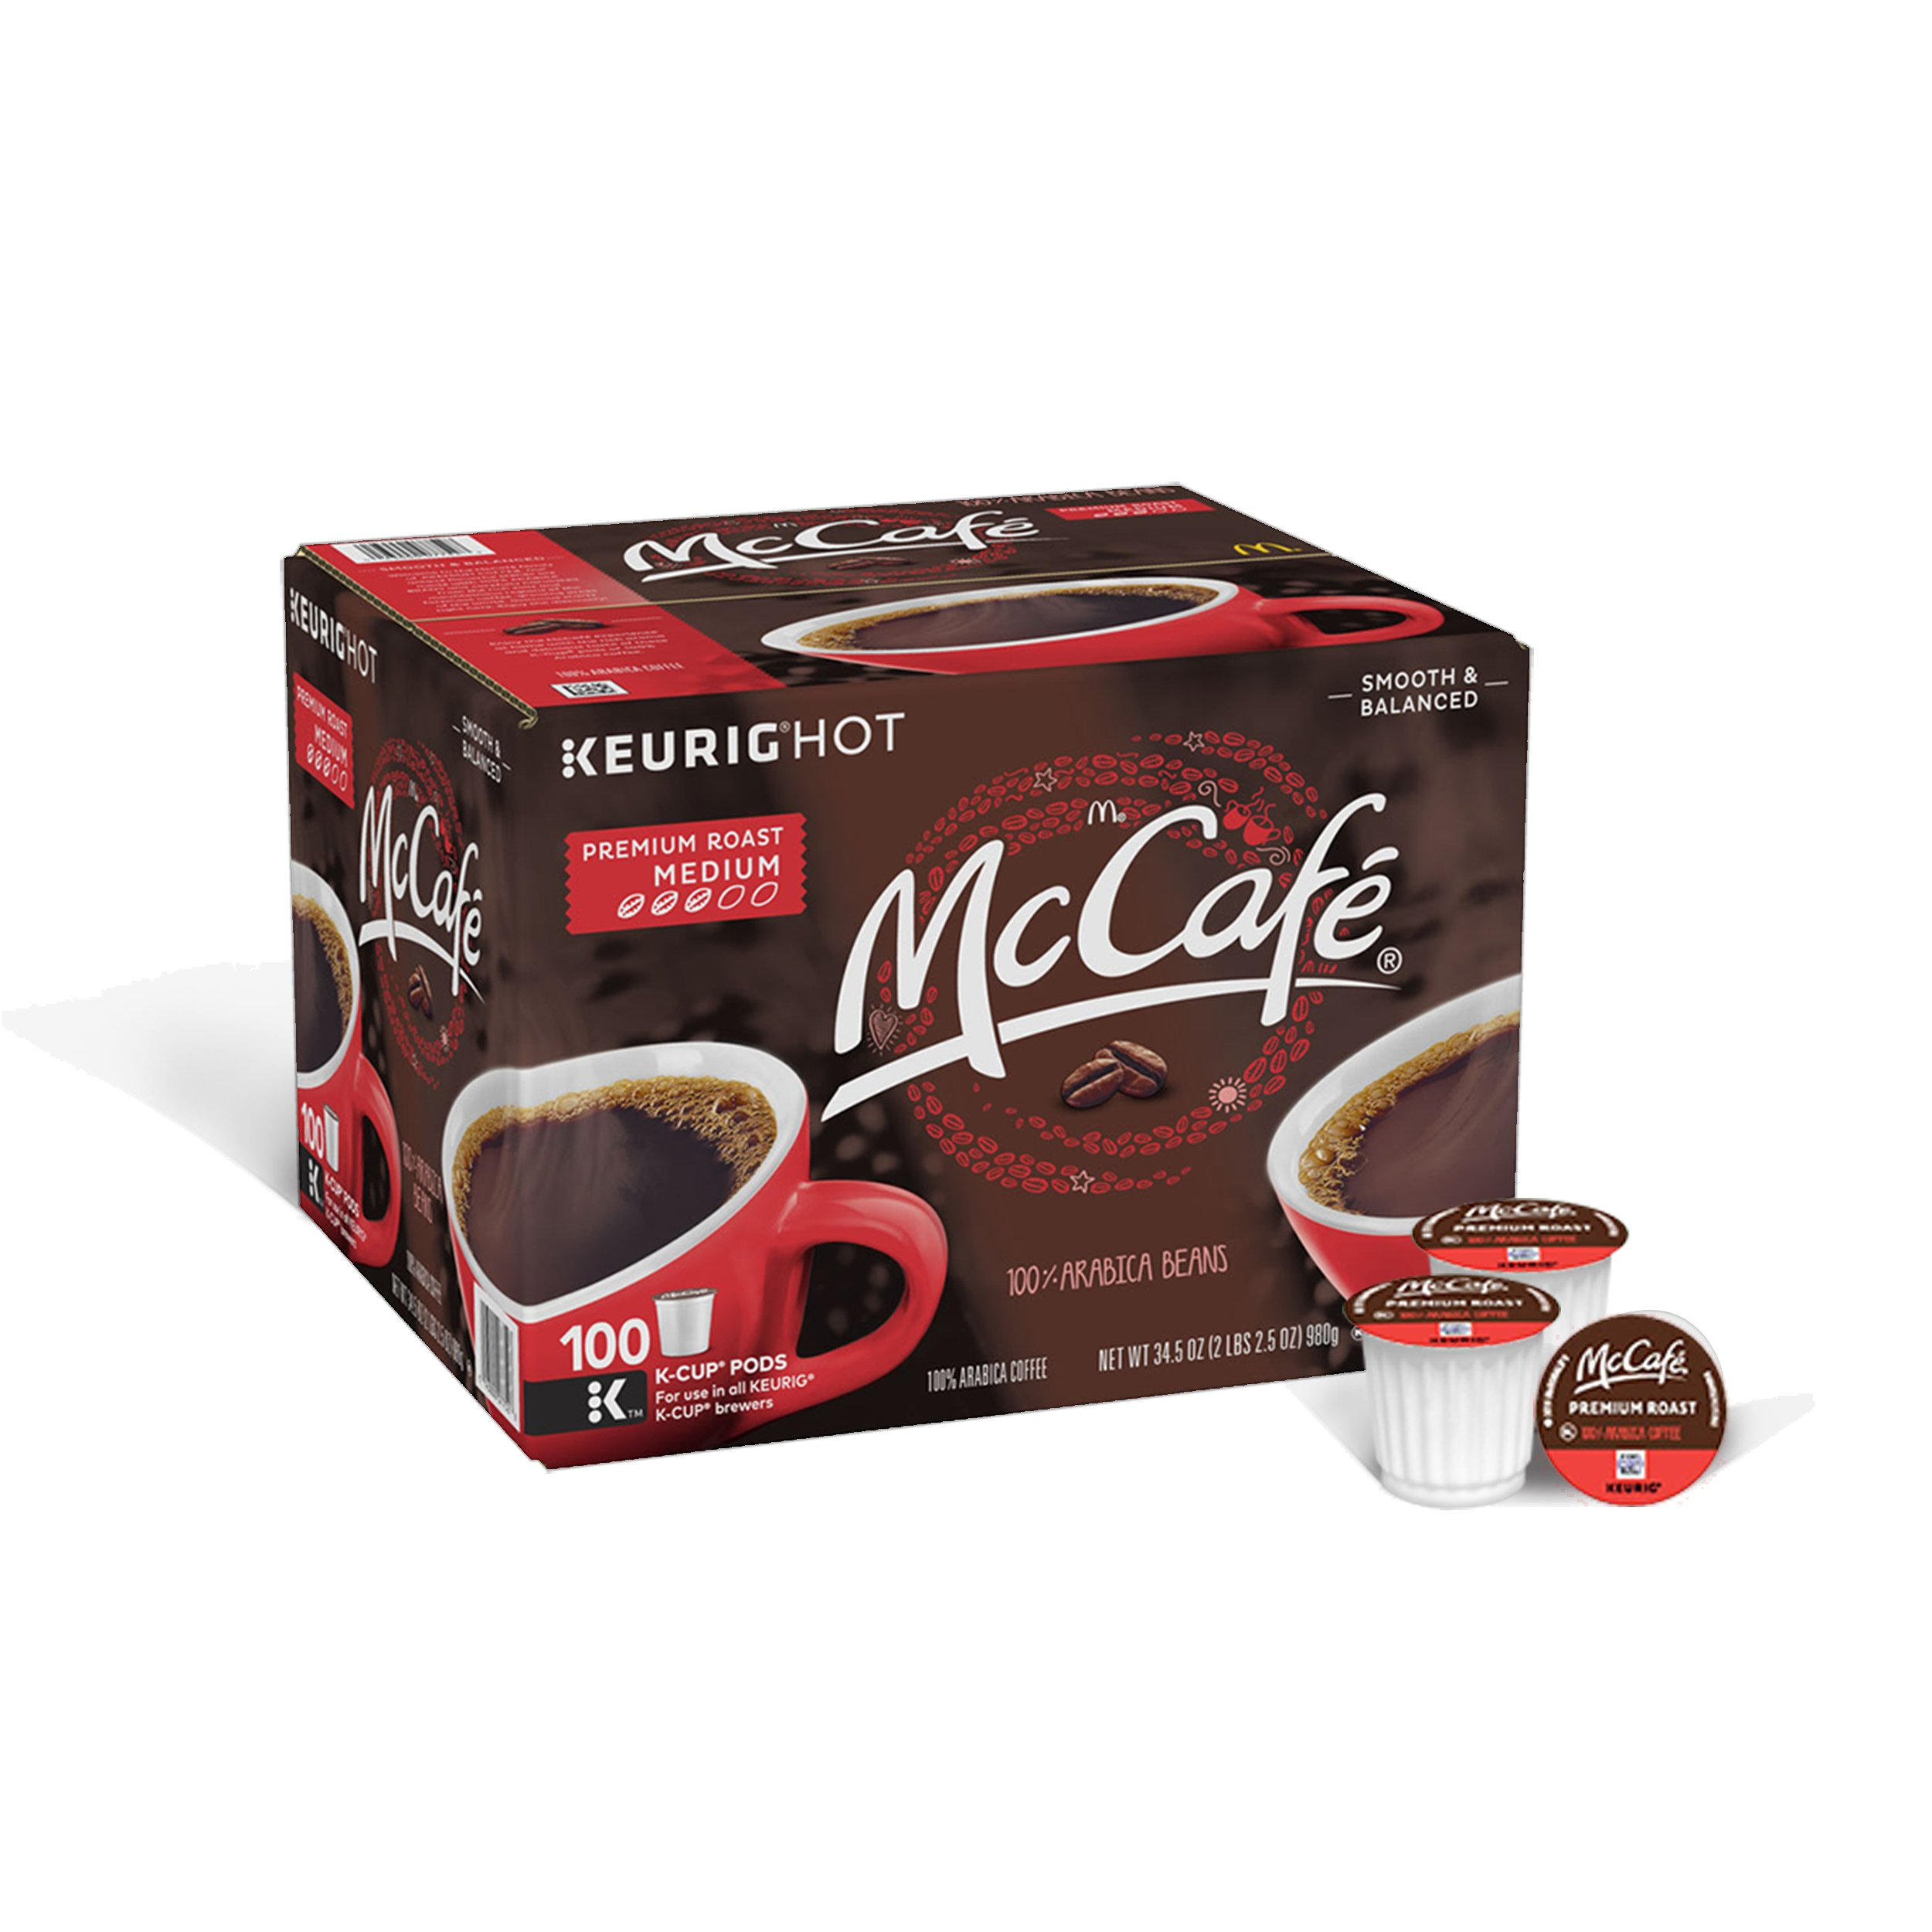 McCafe Premium Roast Coffee, K-CUP PODS, 100 Count by McCafe